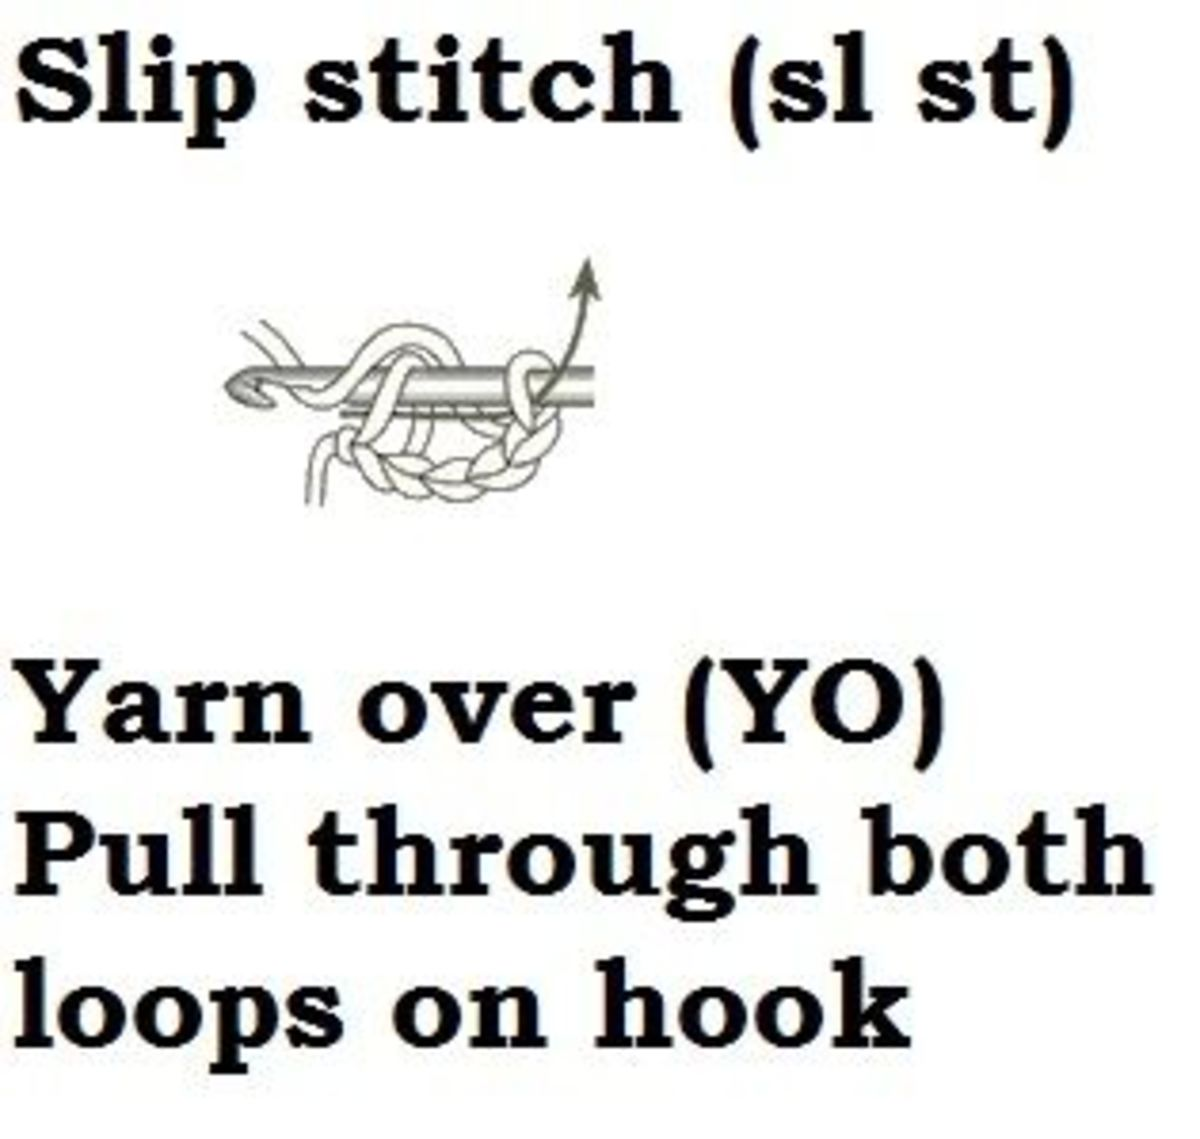 slip stitch-sl st- learn how to crochet